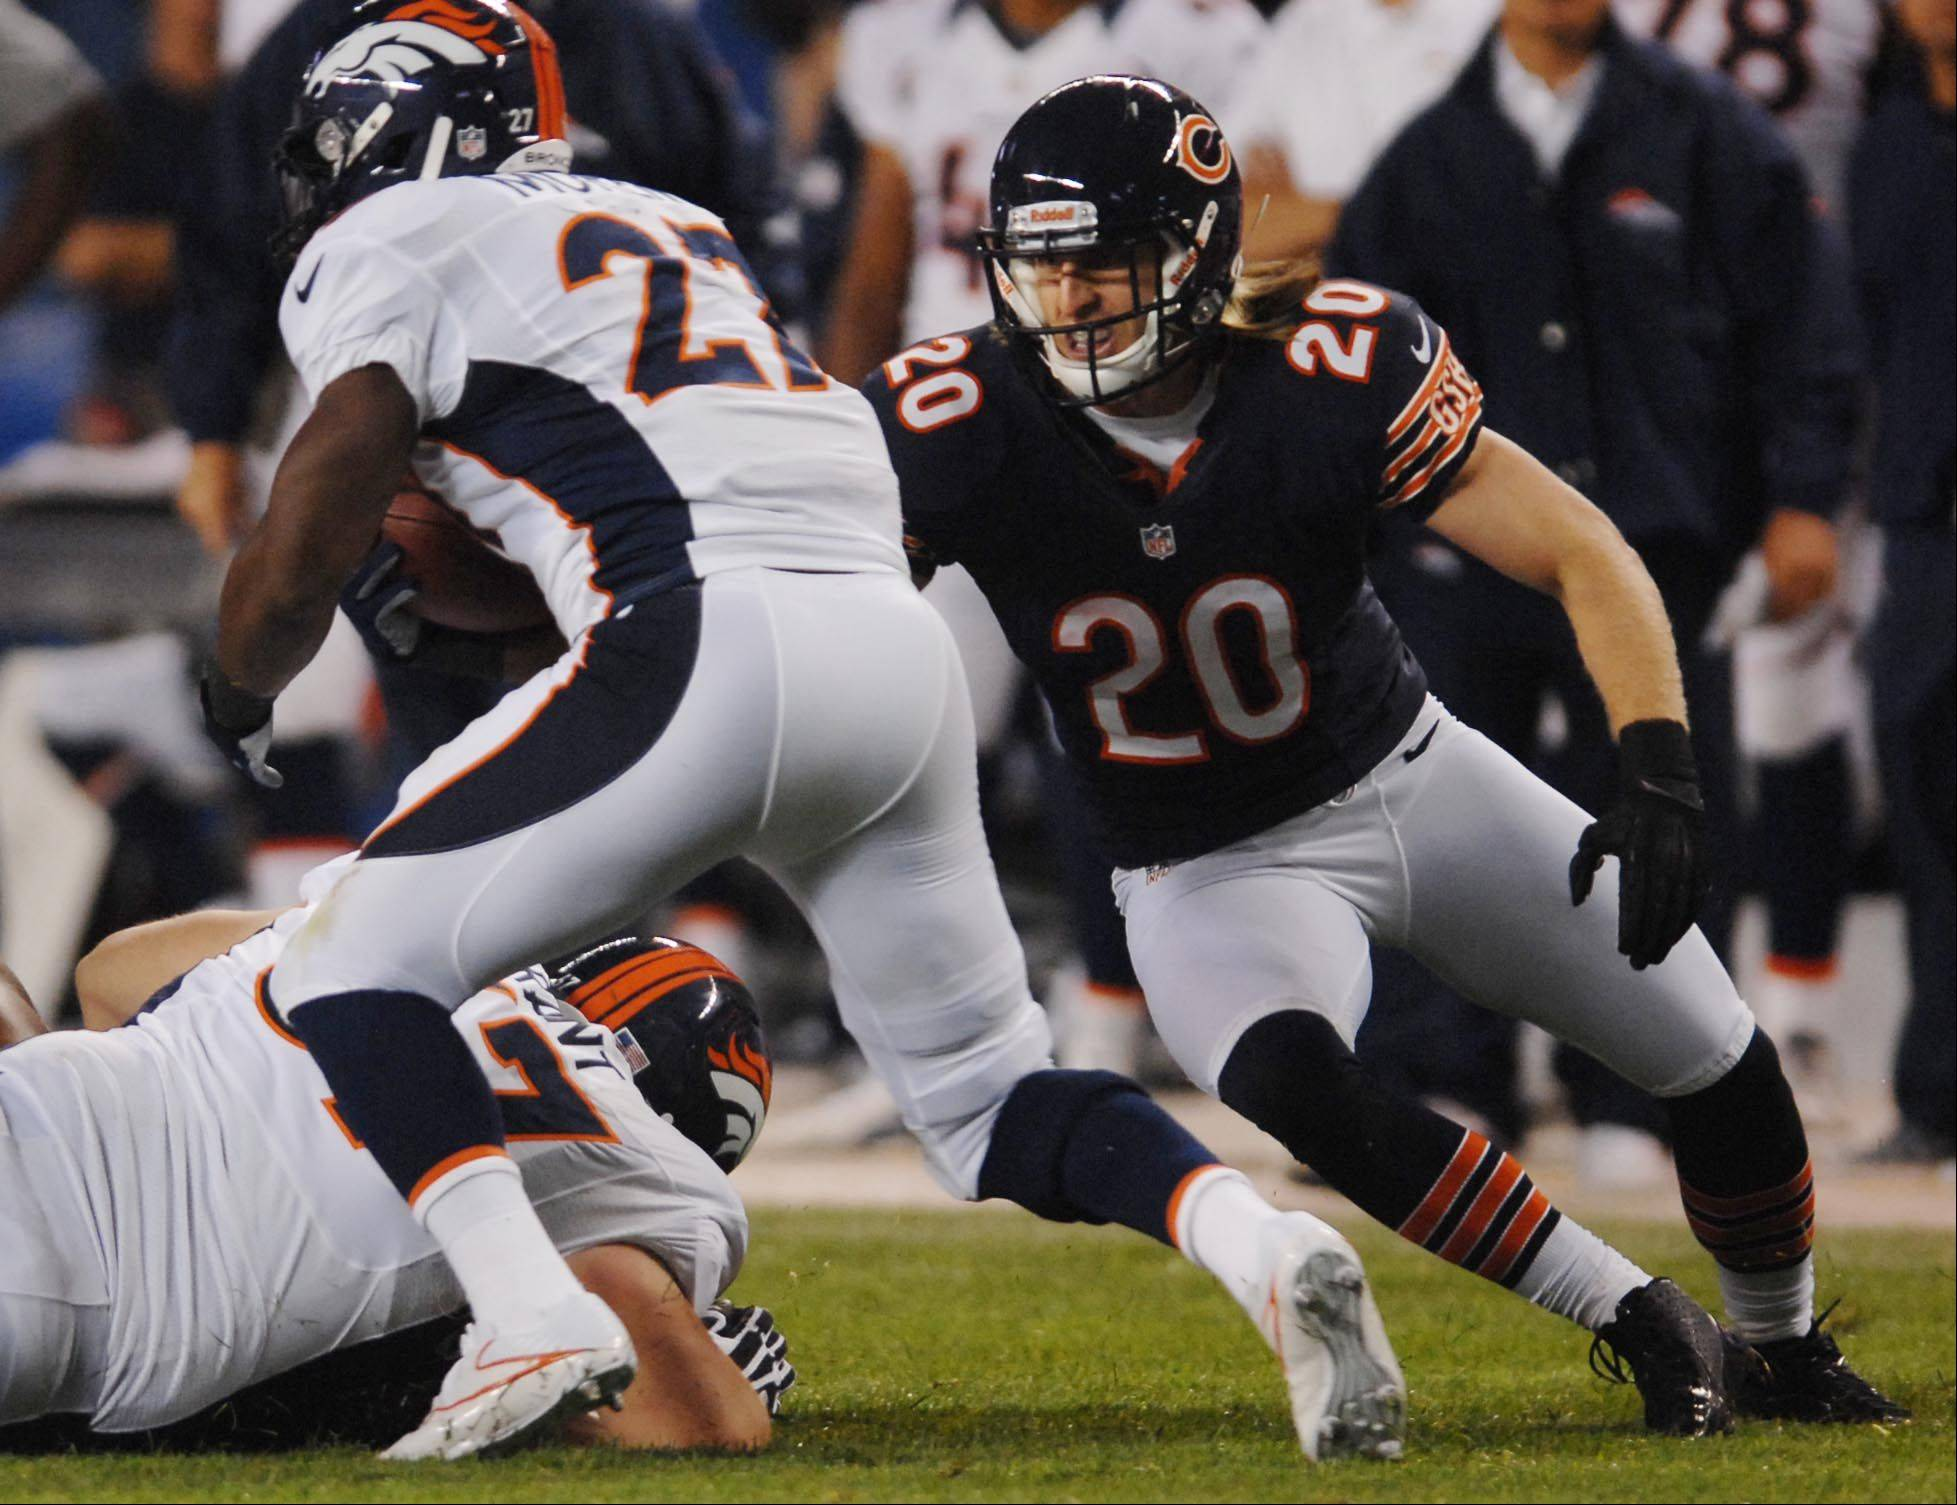 Craig Steltz attempts to tackle Broncos running back Knowshon Moreno during the Bears� preseason opener last Thursday. Steltz has been having a good camp and shined during 1-on-1 blitz drills this week.